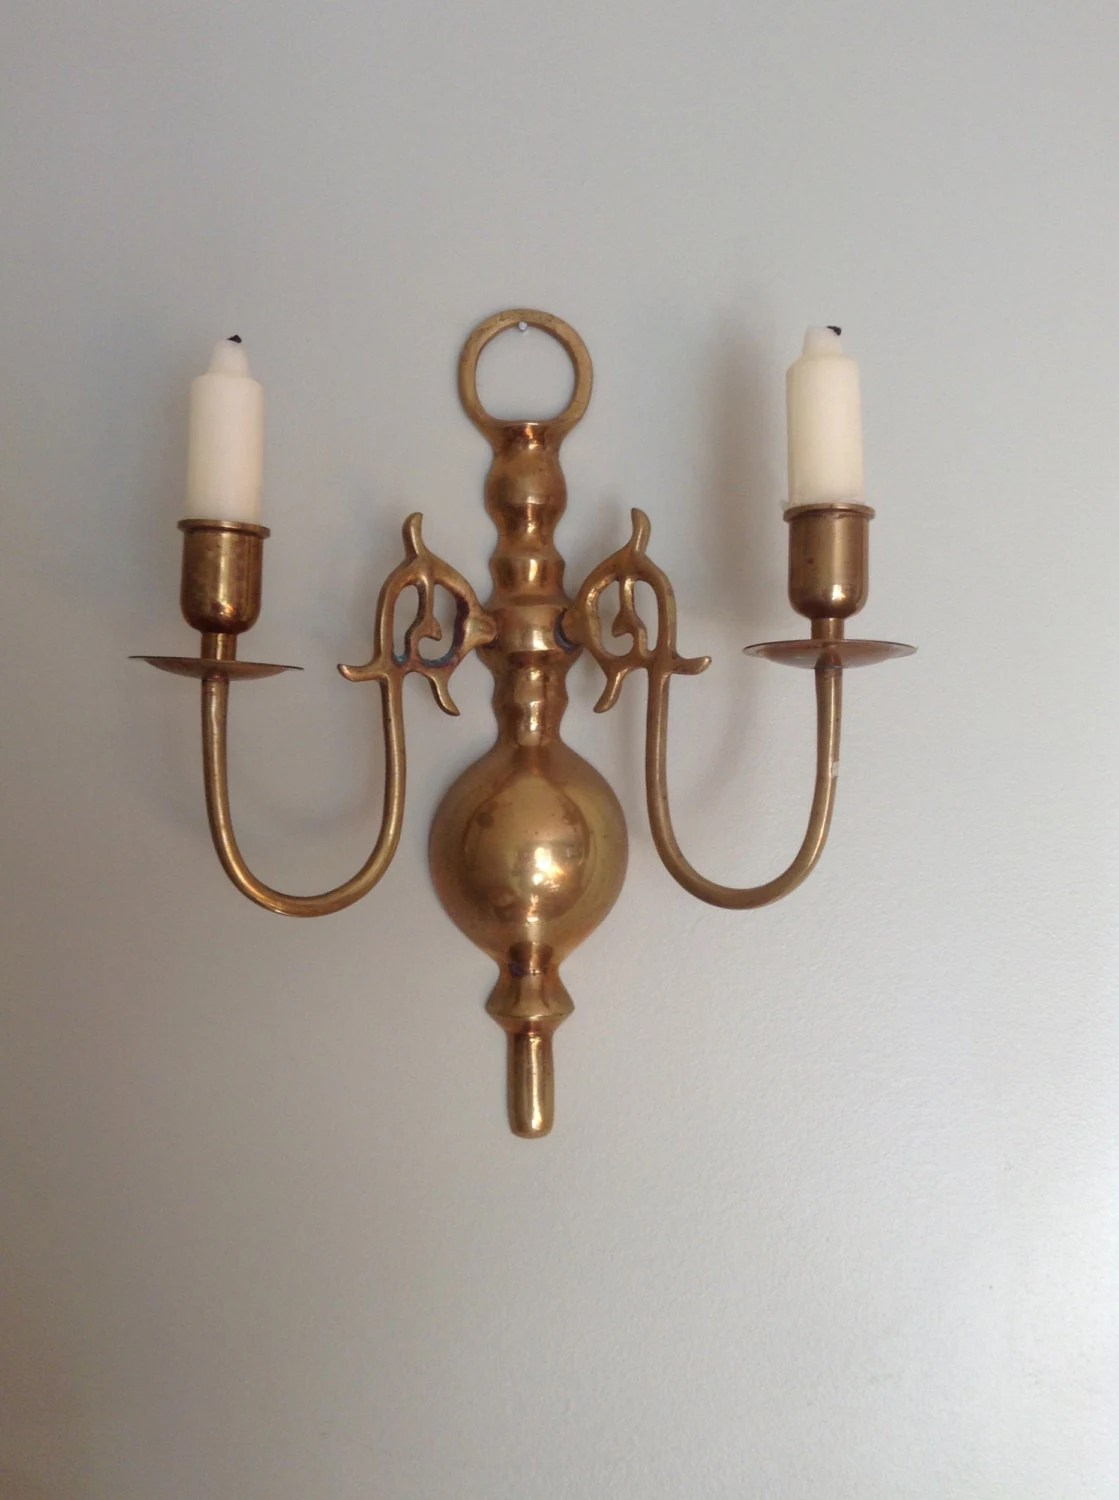 Brass Candle Holder Wall Mount Brass Candle Holder Scone on Wall Mounted Candle Holder id=26653